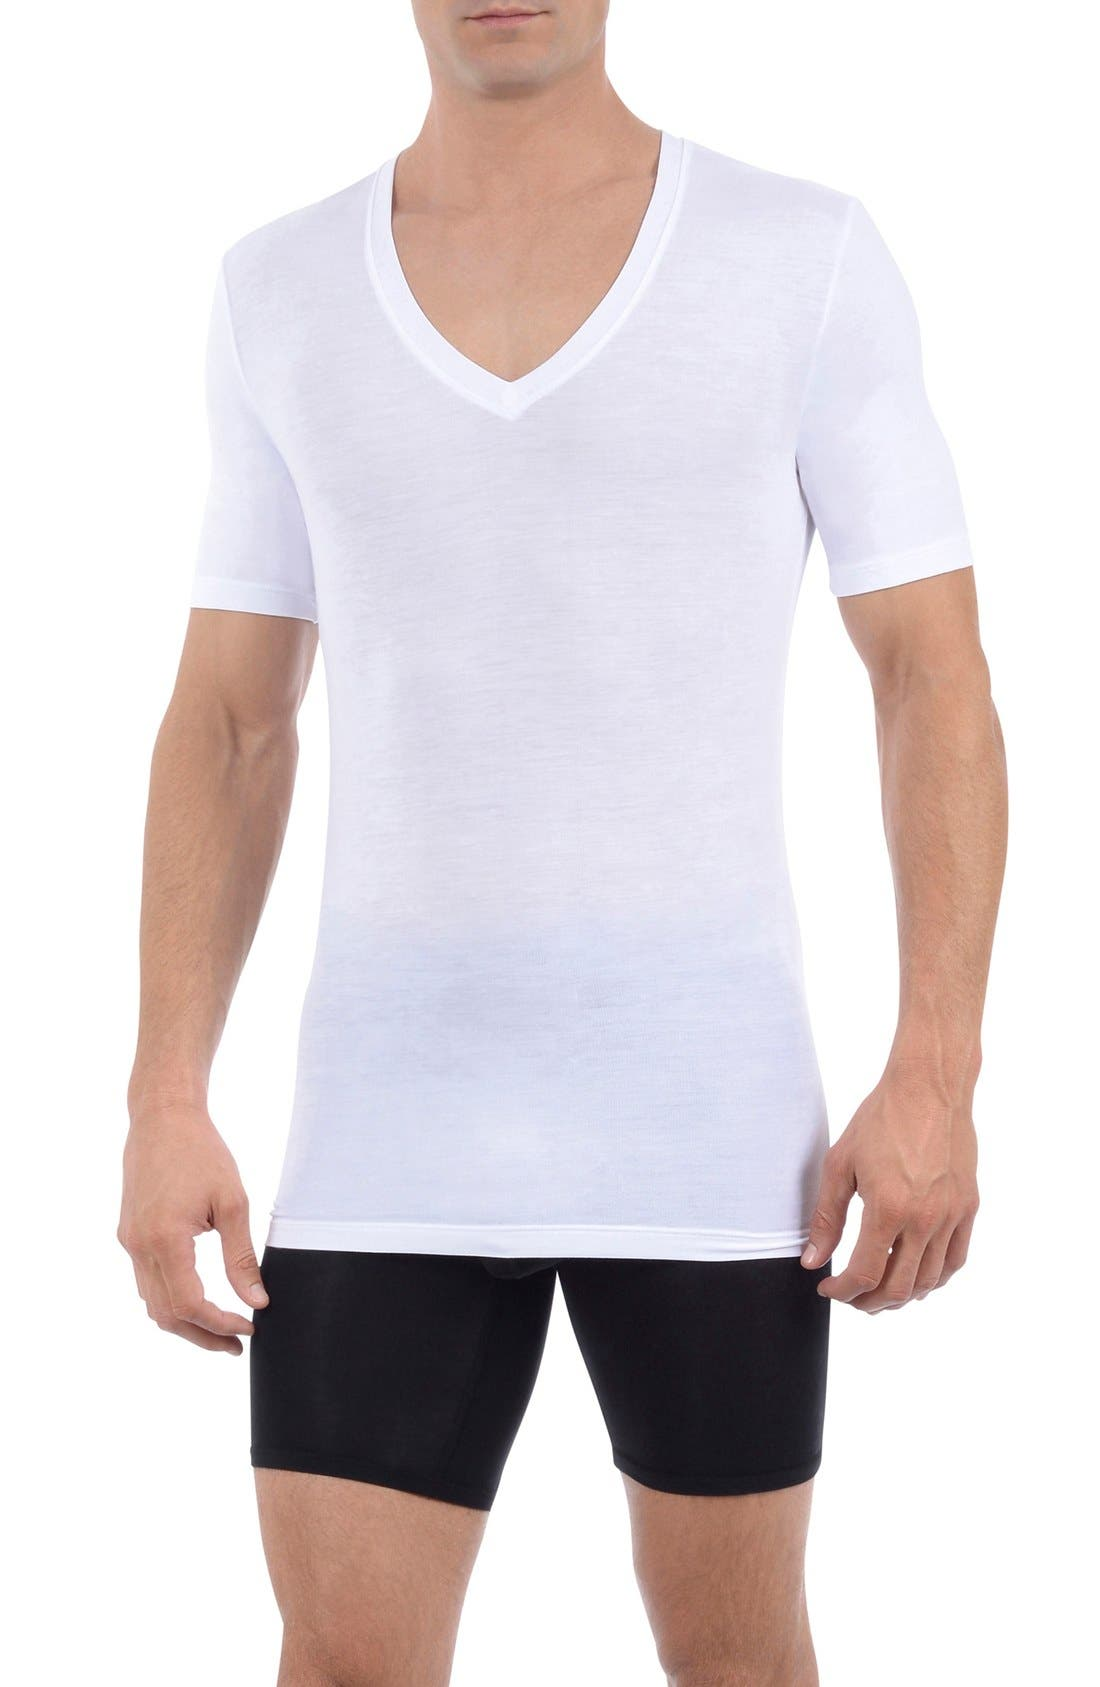 Alternate Image 1 Selected - Tommy John Second Skin Micromodal Deep V-Neck Undershirt